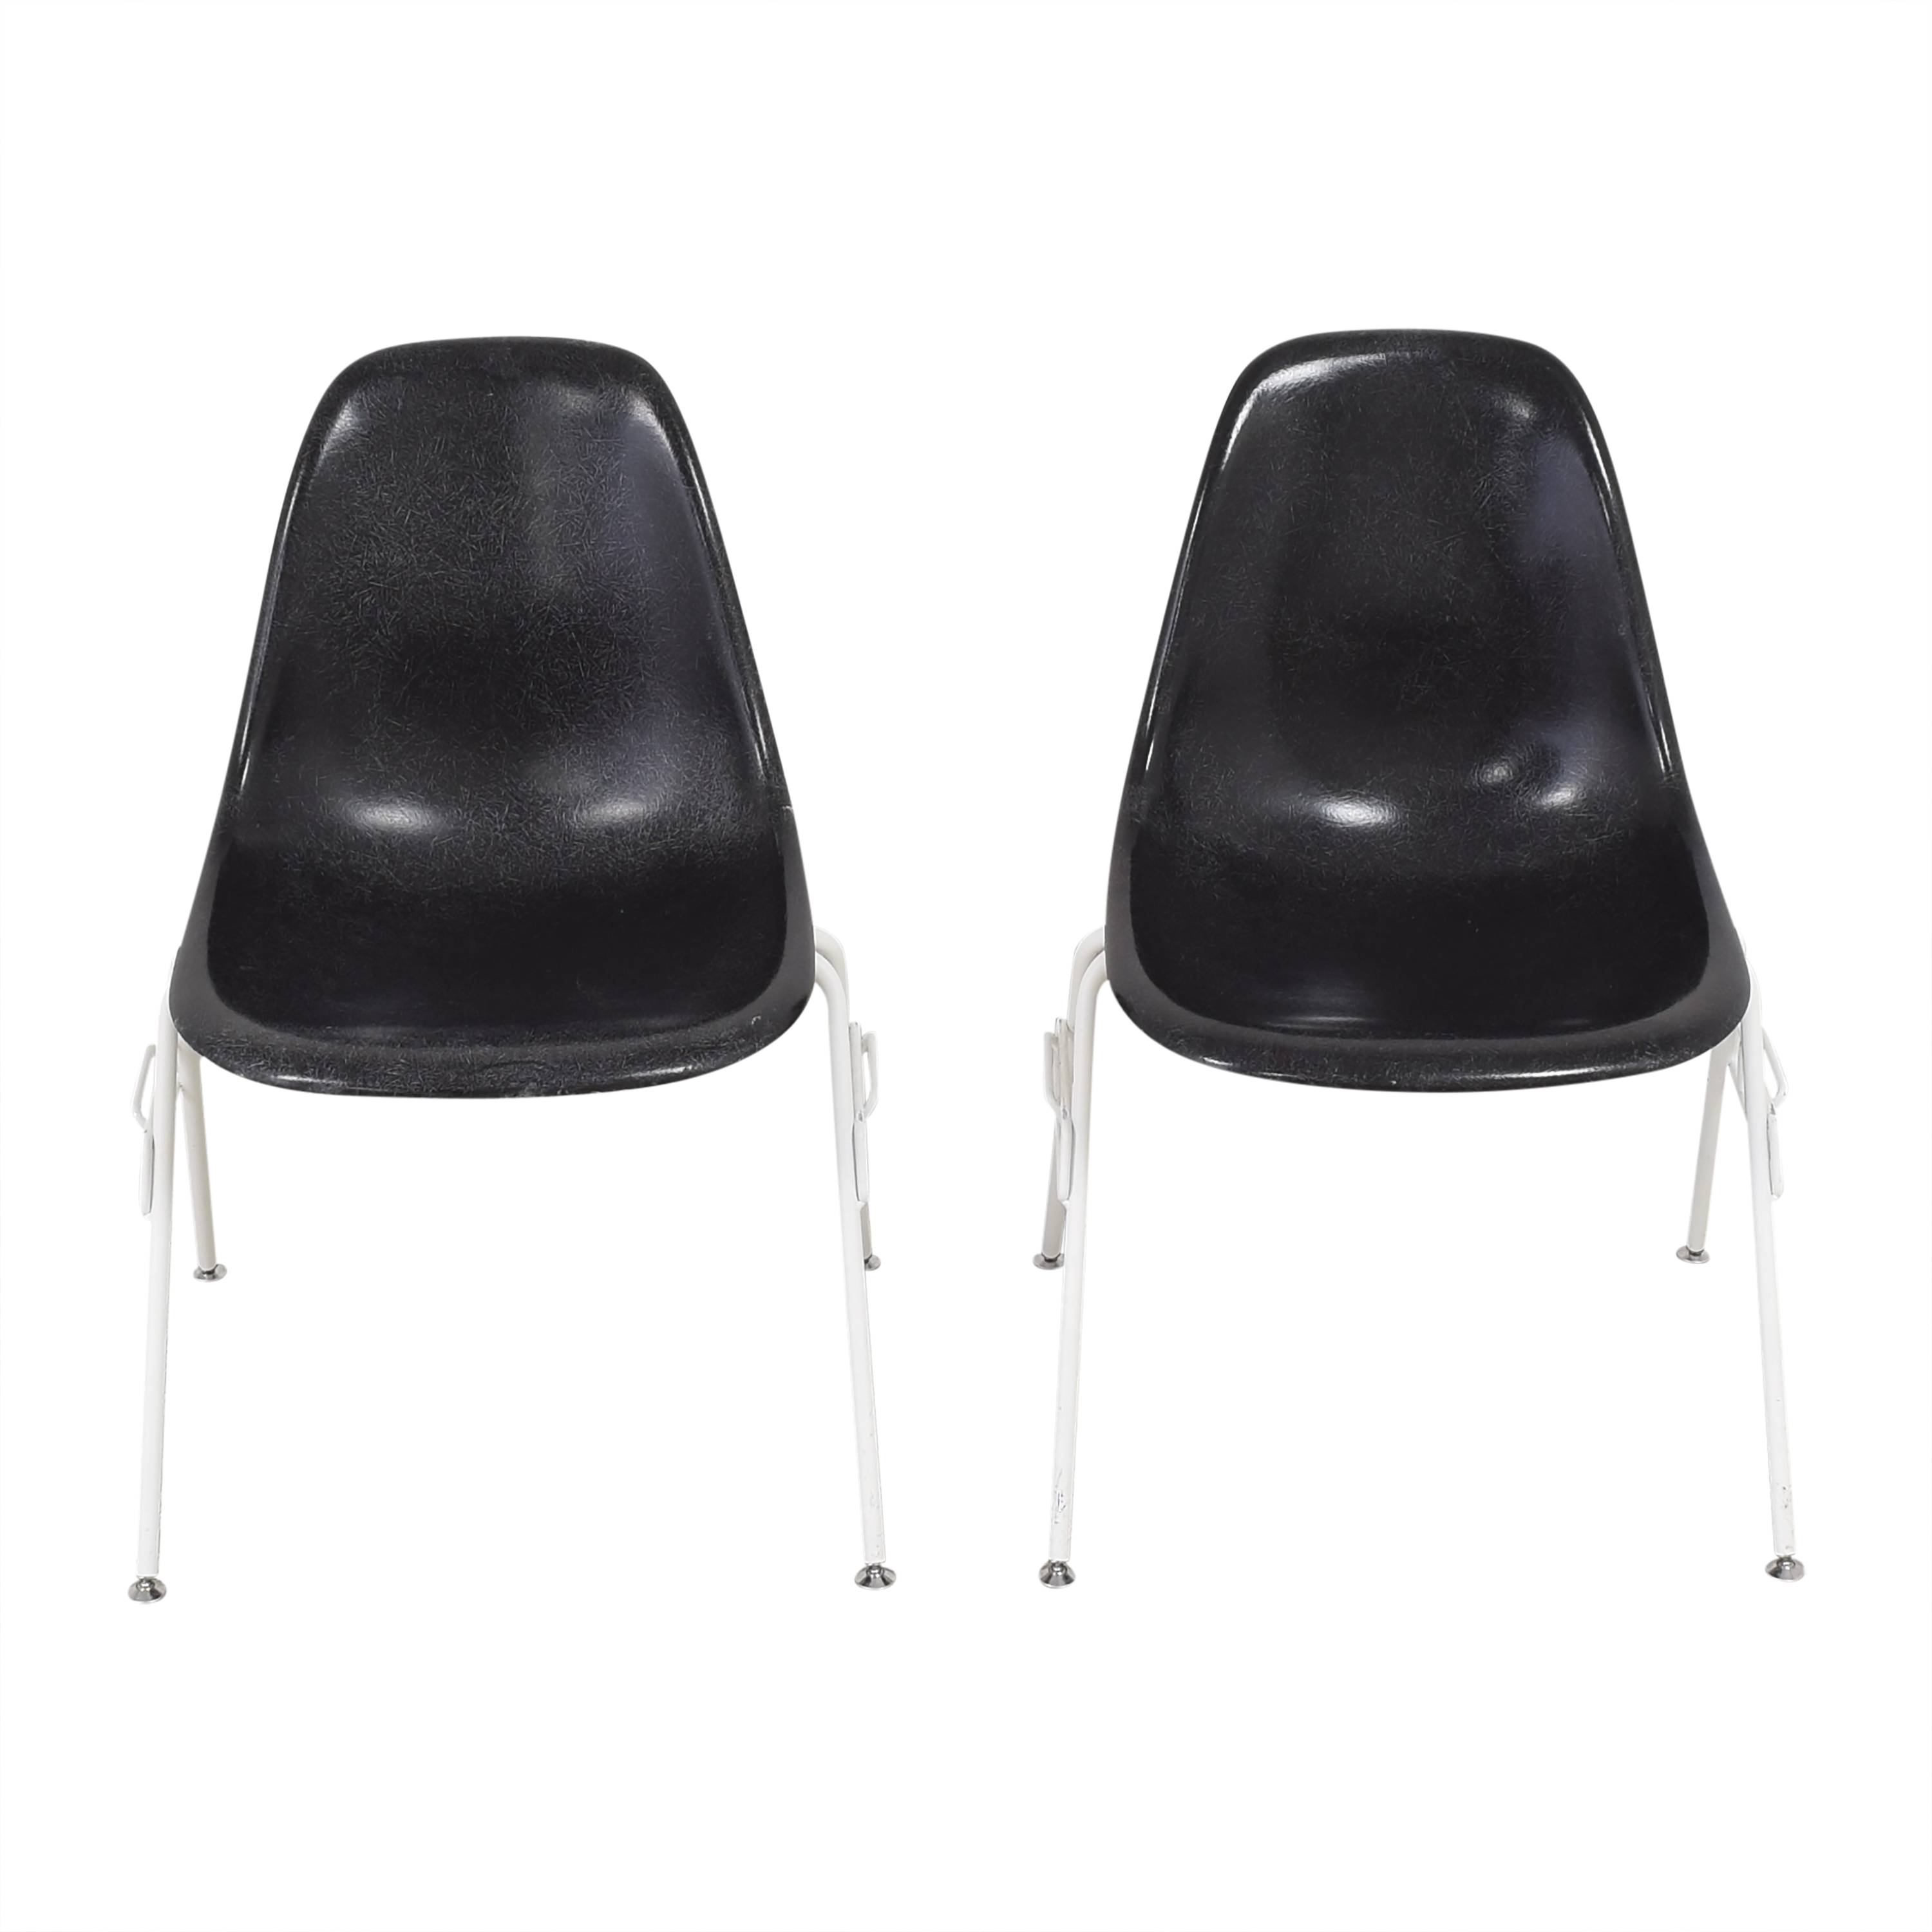 Modernica Case Study Furniture Side Shell Stacking Chairs / Chairs